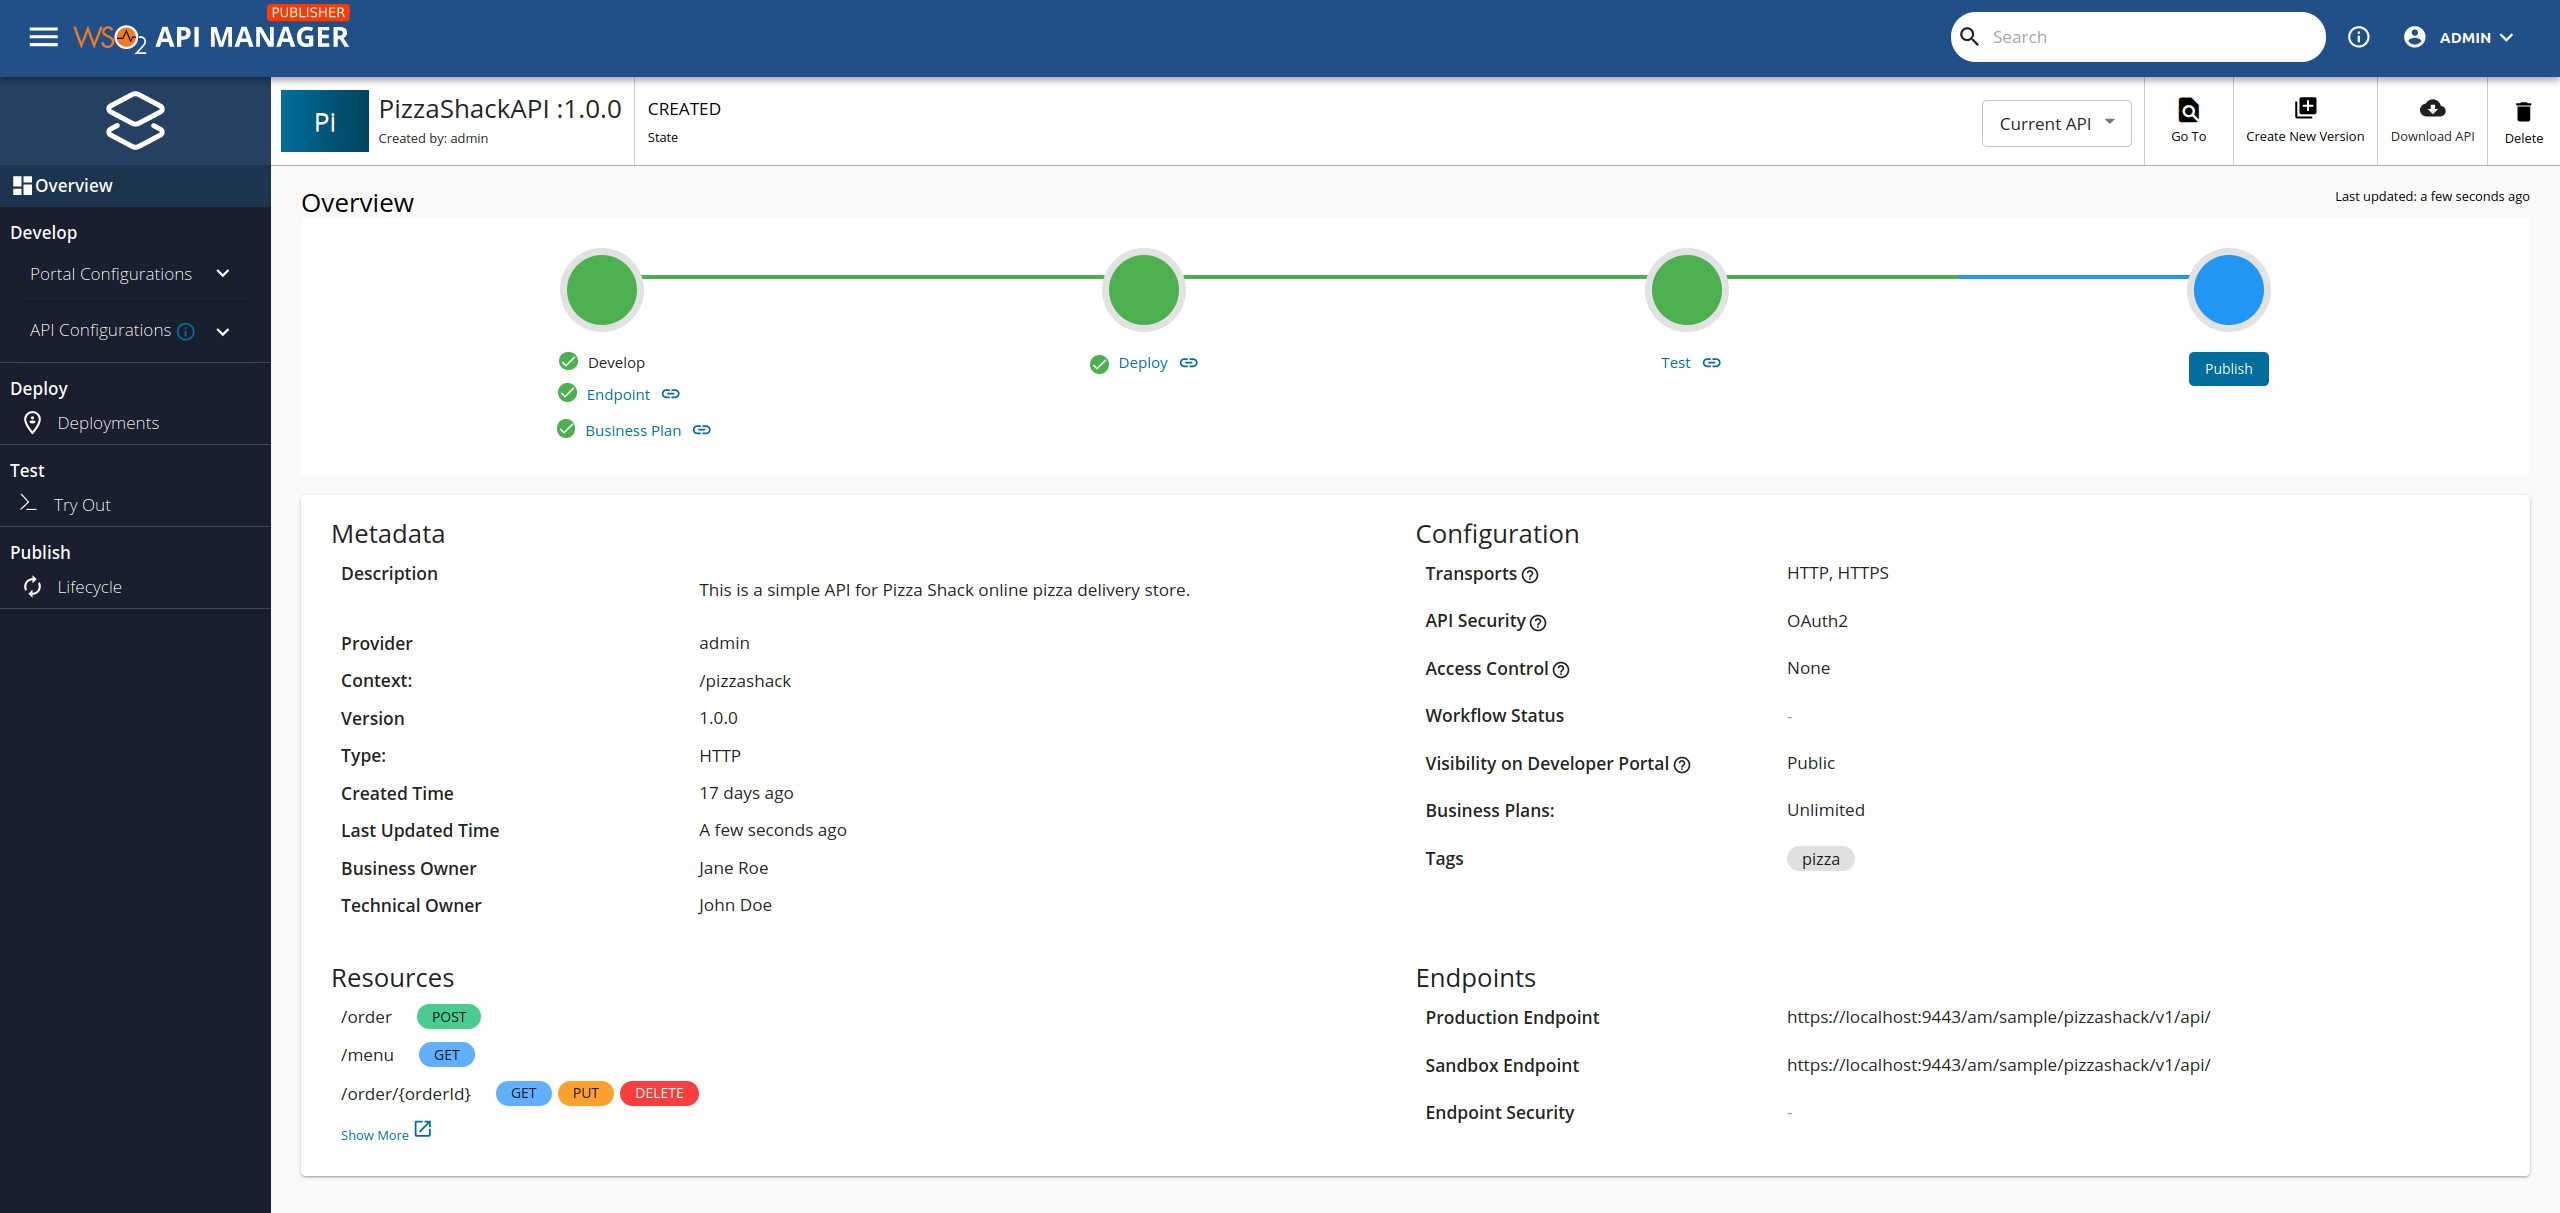 API overview page